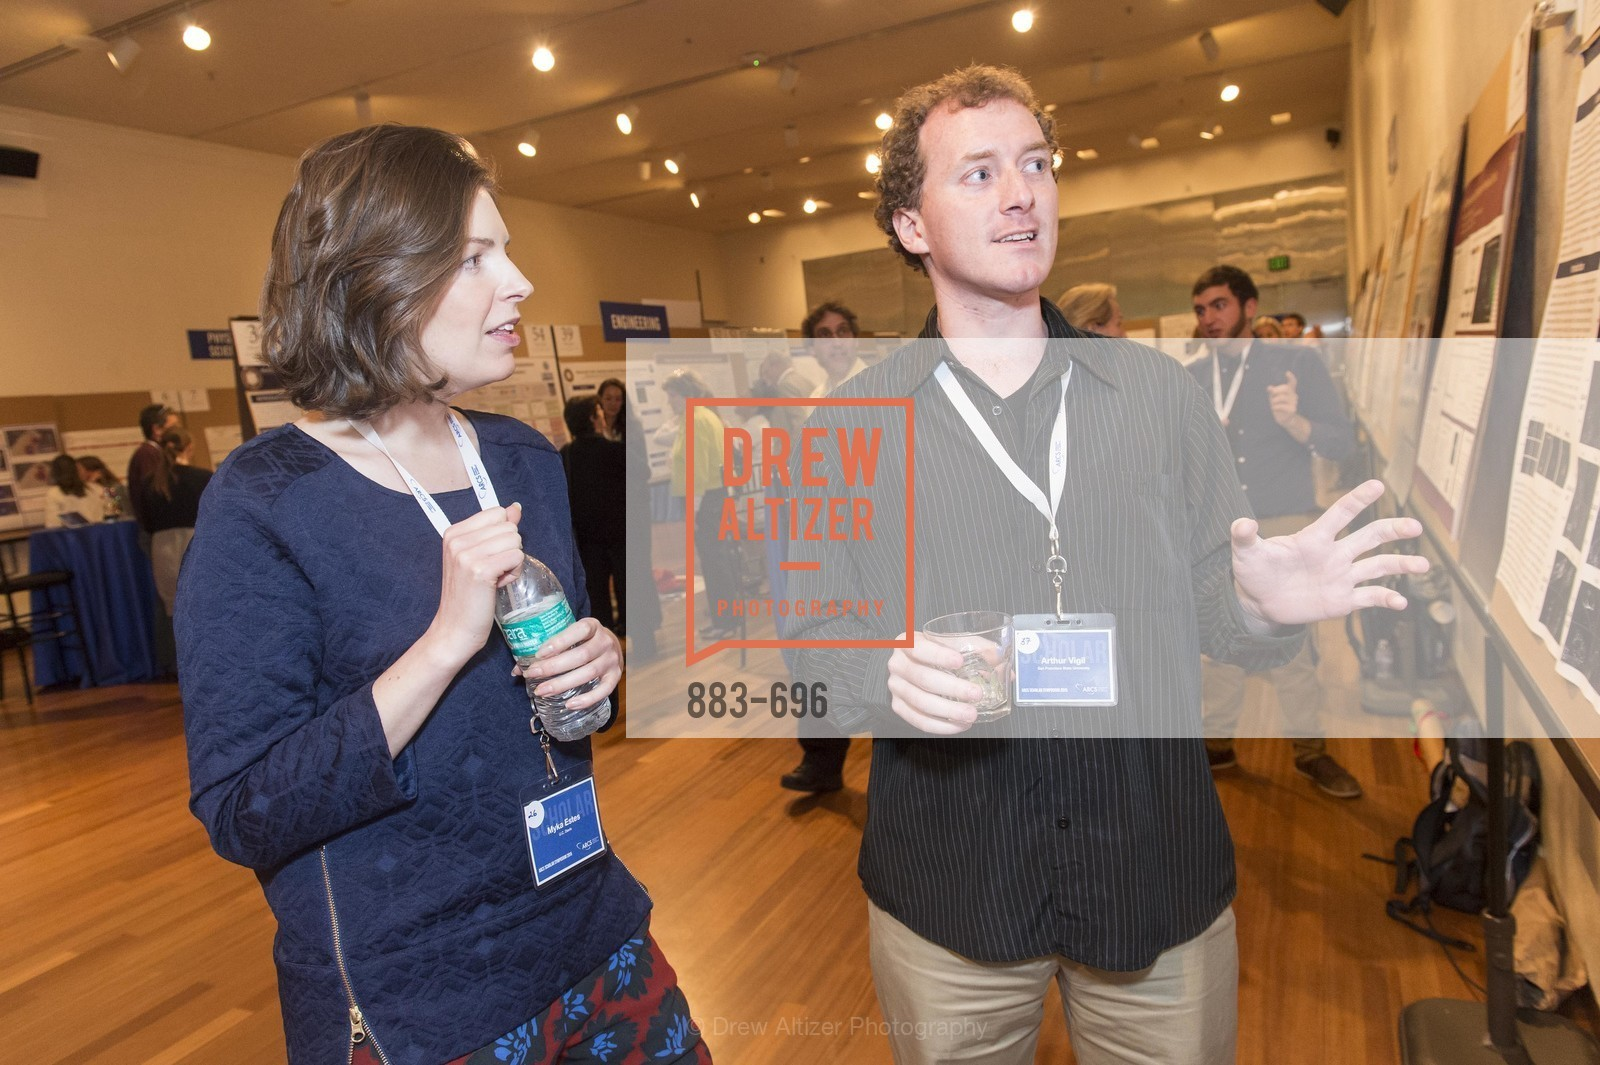 Myka Estes, Arthur Vigil, ARCS FOUNDATION Scholar Symposium, US, May 5th, 2015,Drew Altizer, Drew Altizer Photography, full-service agency, private events, San Francisco photographer, photographer california